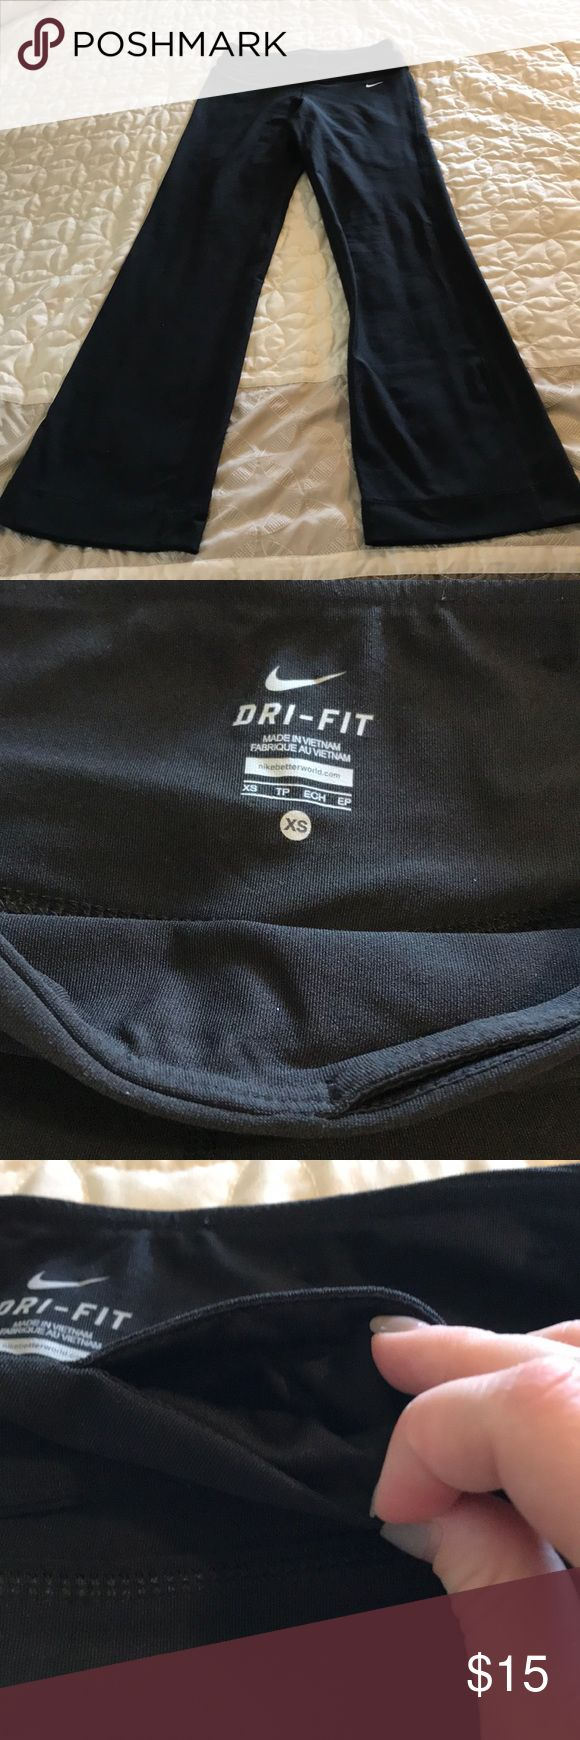 Nike Dri Fit Yoga pants XS EUC Nike Yoga Pants— worn once but just too small for me. There's a small pocket at the top for keys, etc (shown in pictures) Nike Pants Track Pants & Joggers